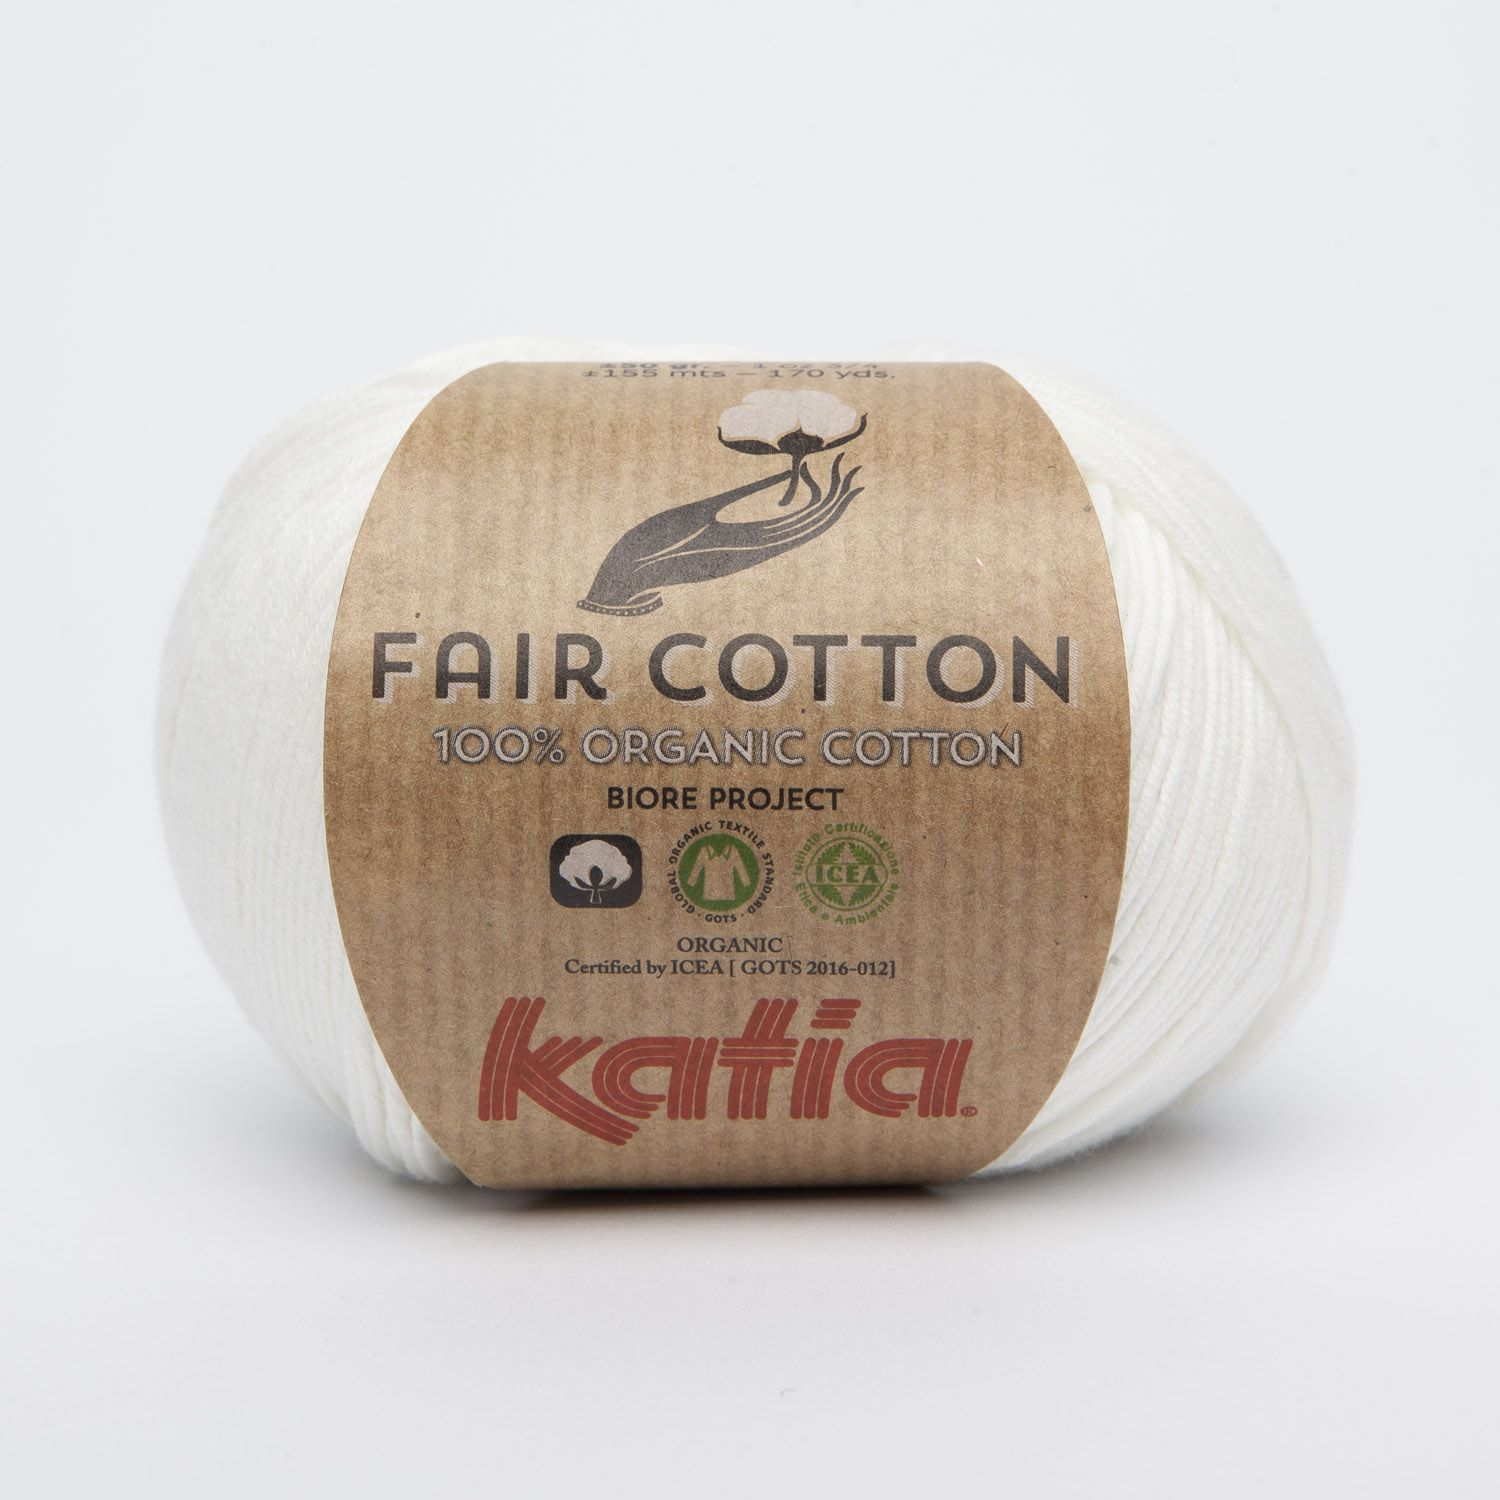 Katia Fair Cotton: 100% organic cotton cultivated according to the Fair Trade standards by small farmers from India and Tanzania.